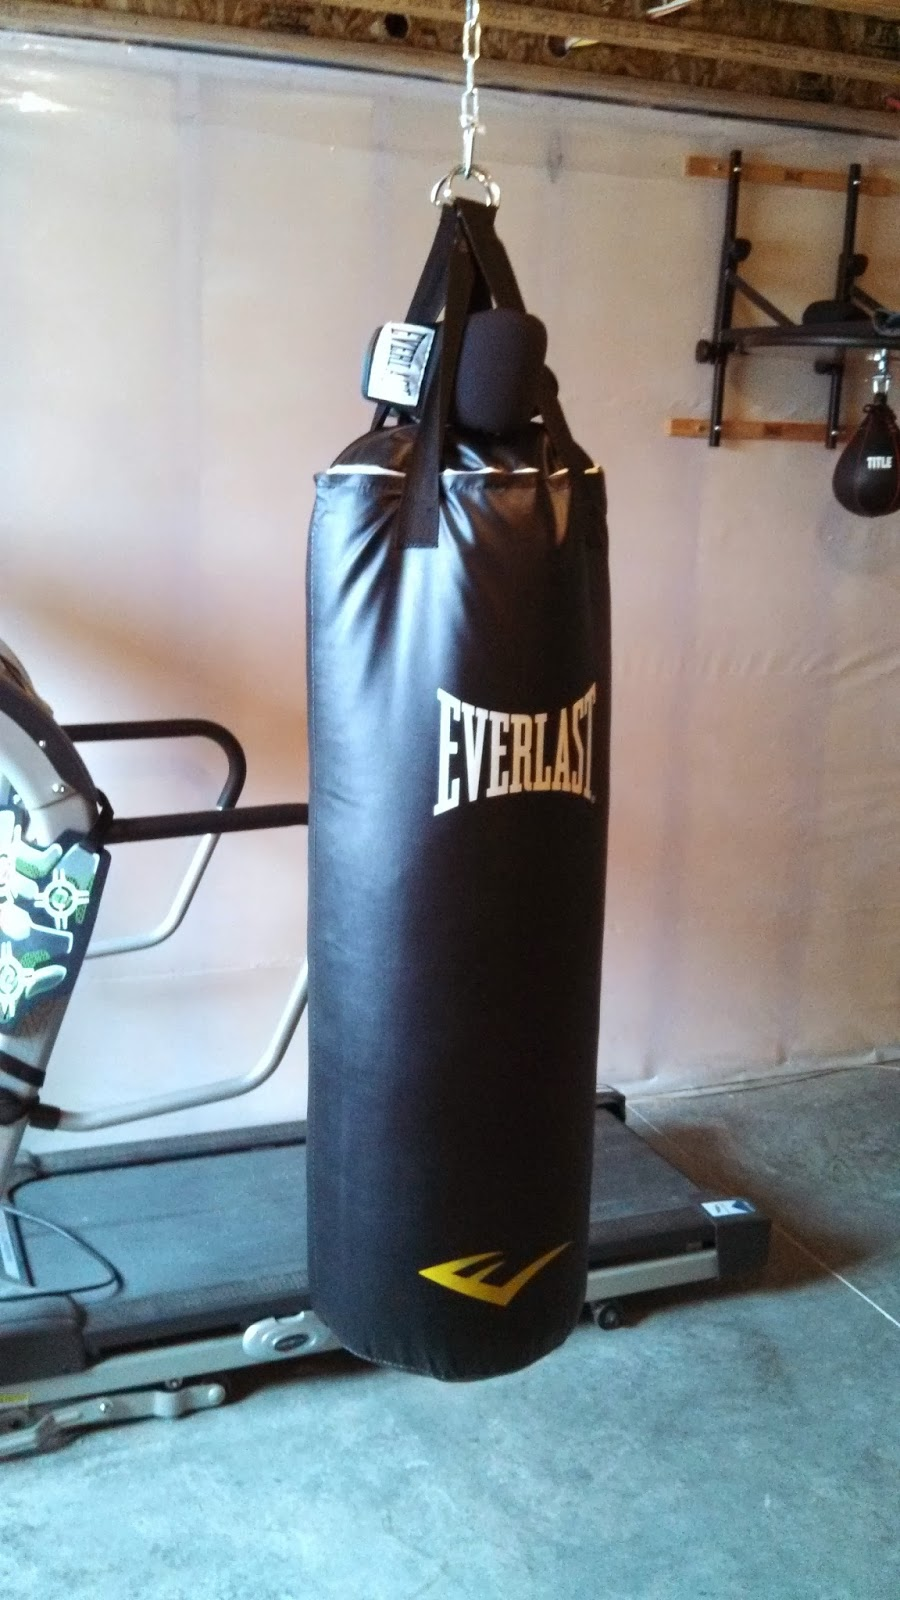 Everlast Punching Bag: Heavy Bag and Speed Bag | Penny Pincher Journal